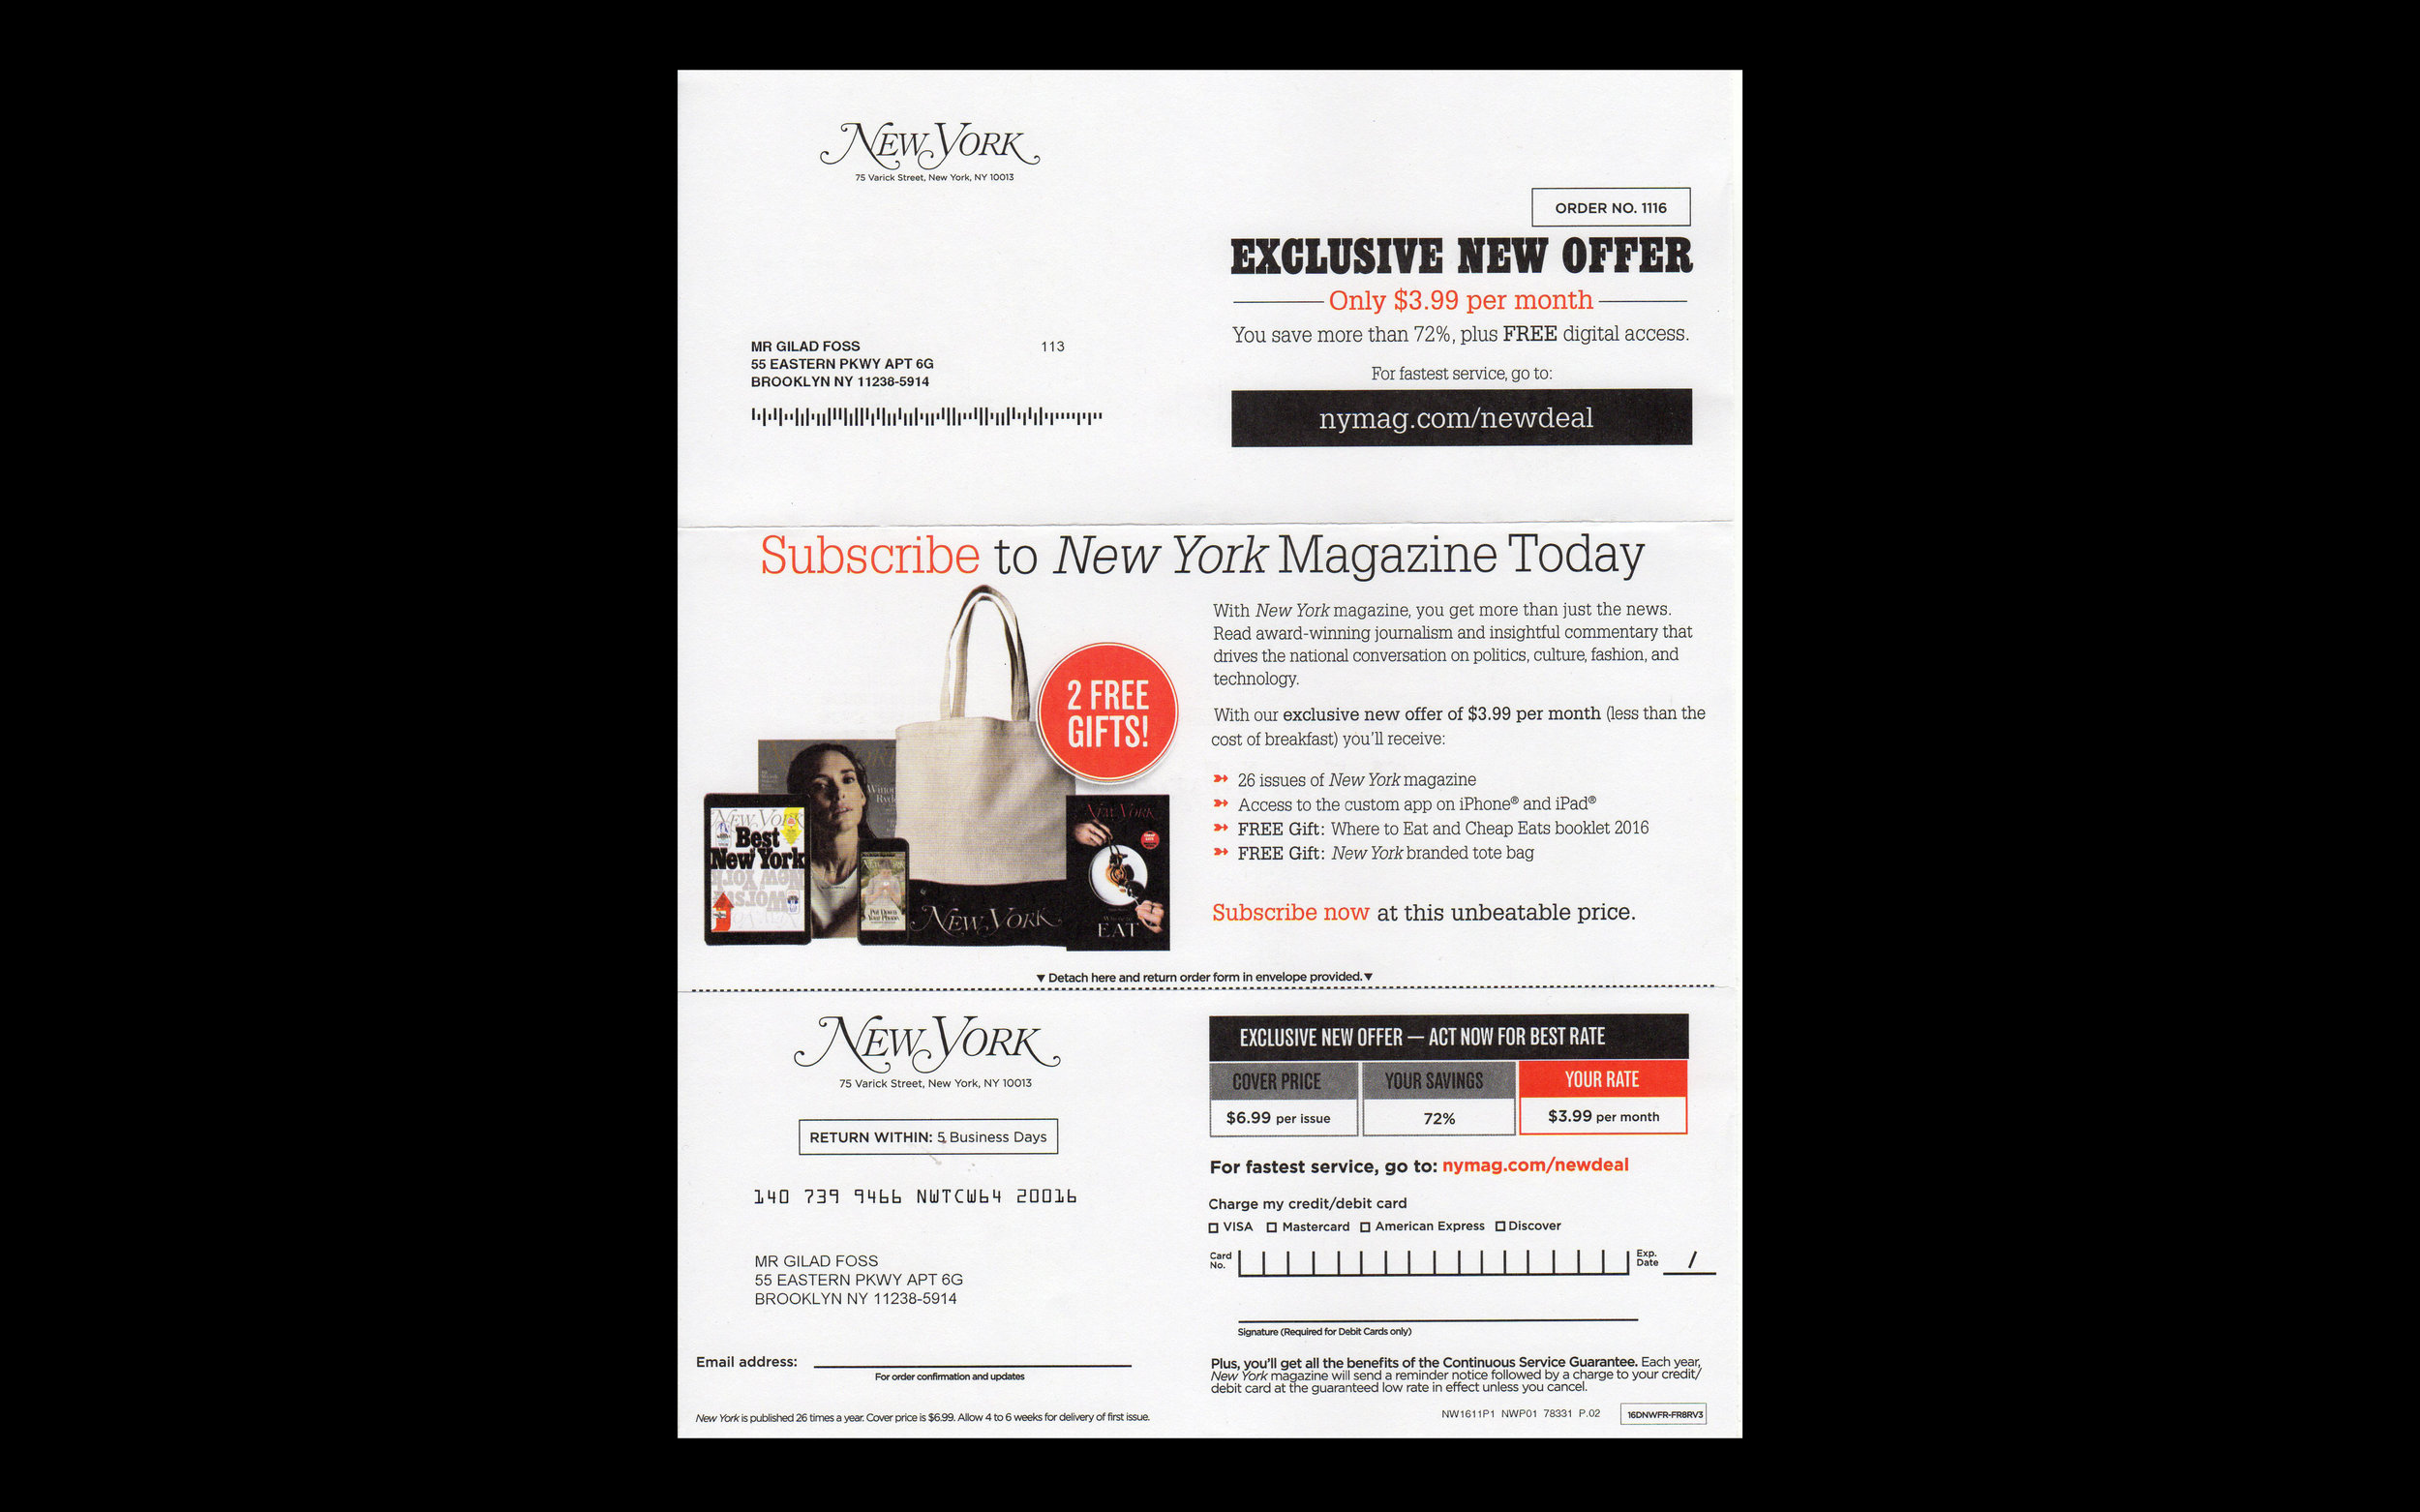 New York Magazine: Subscription Renewal Offer